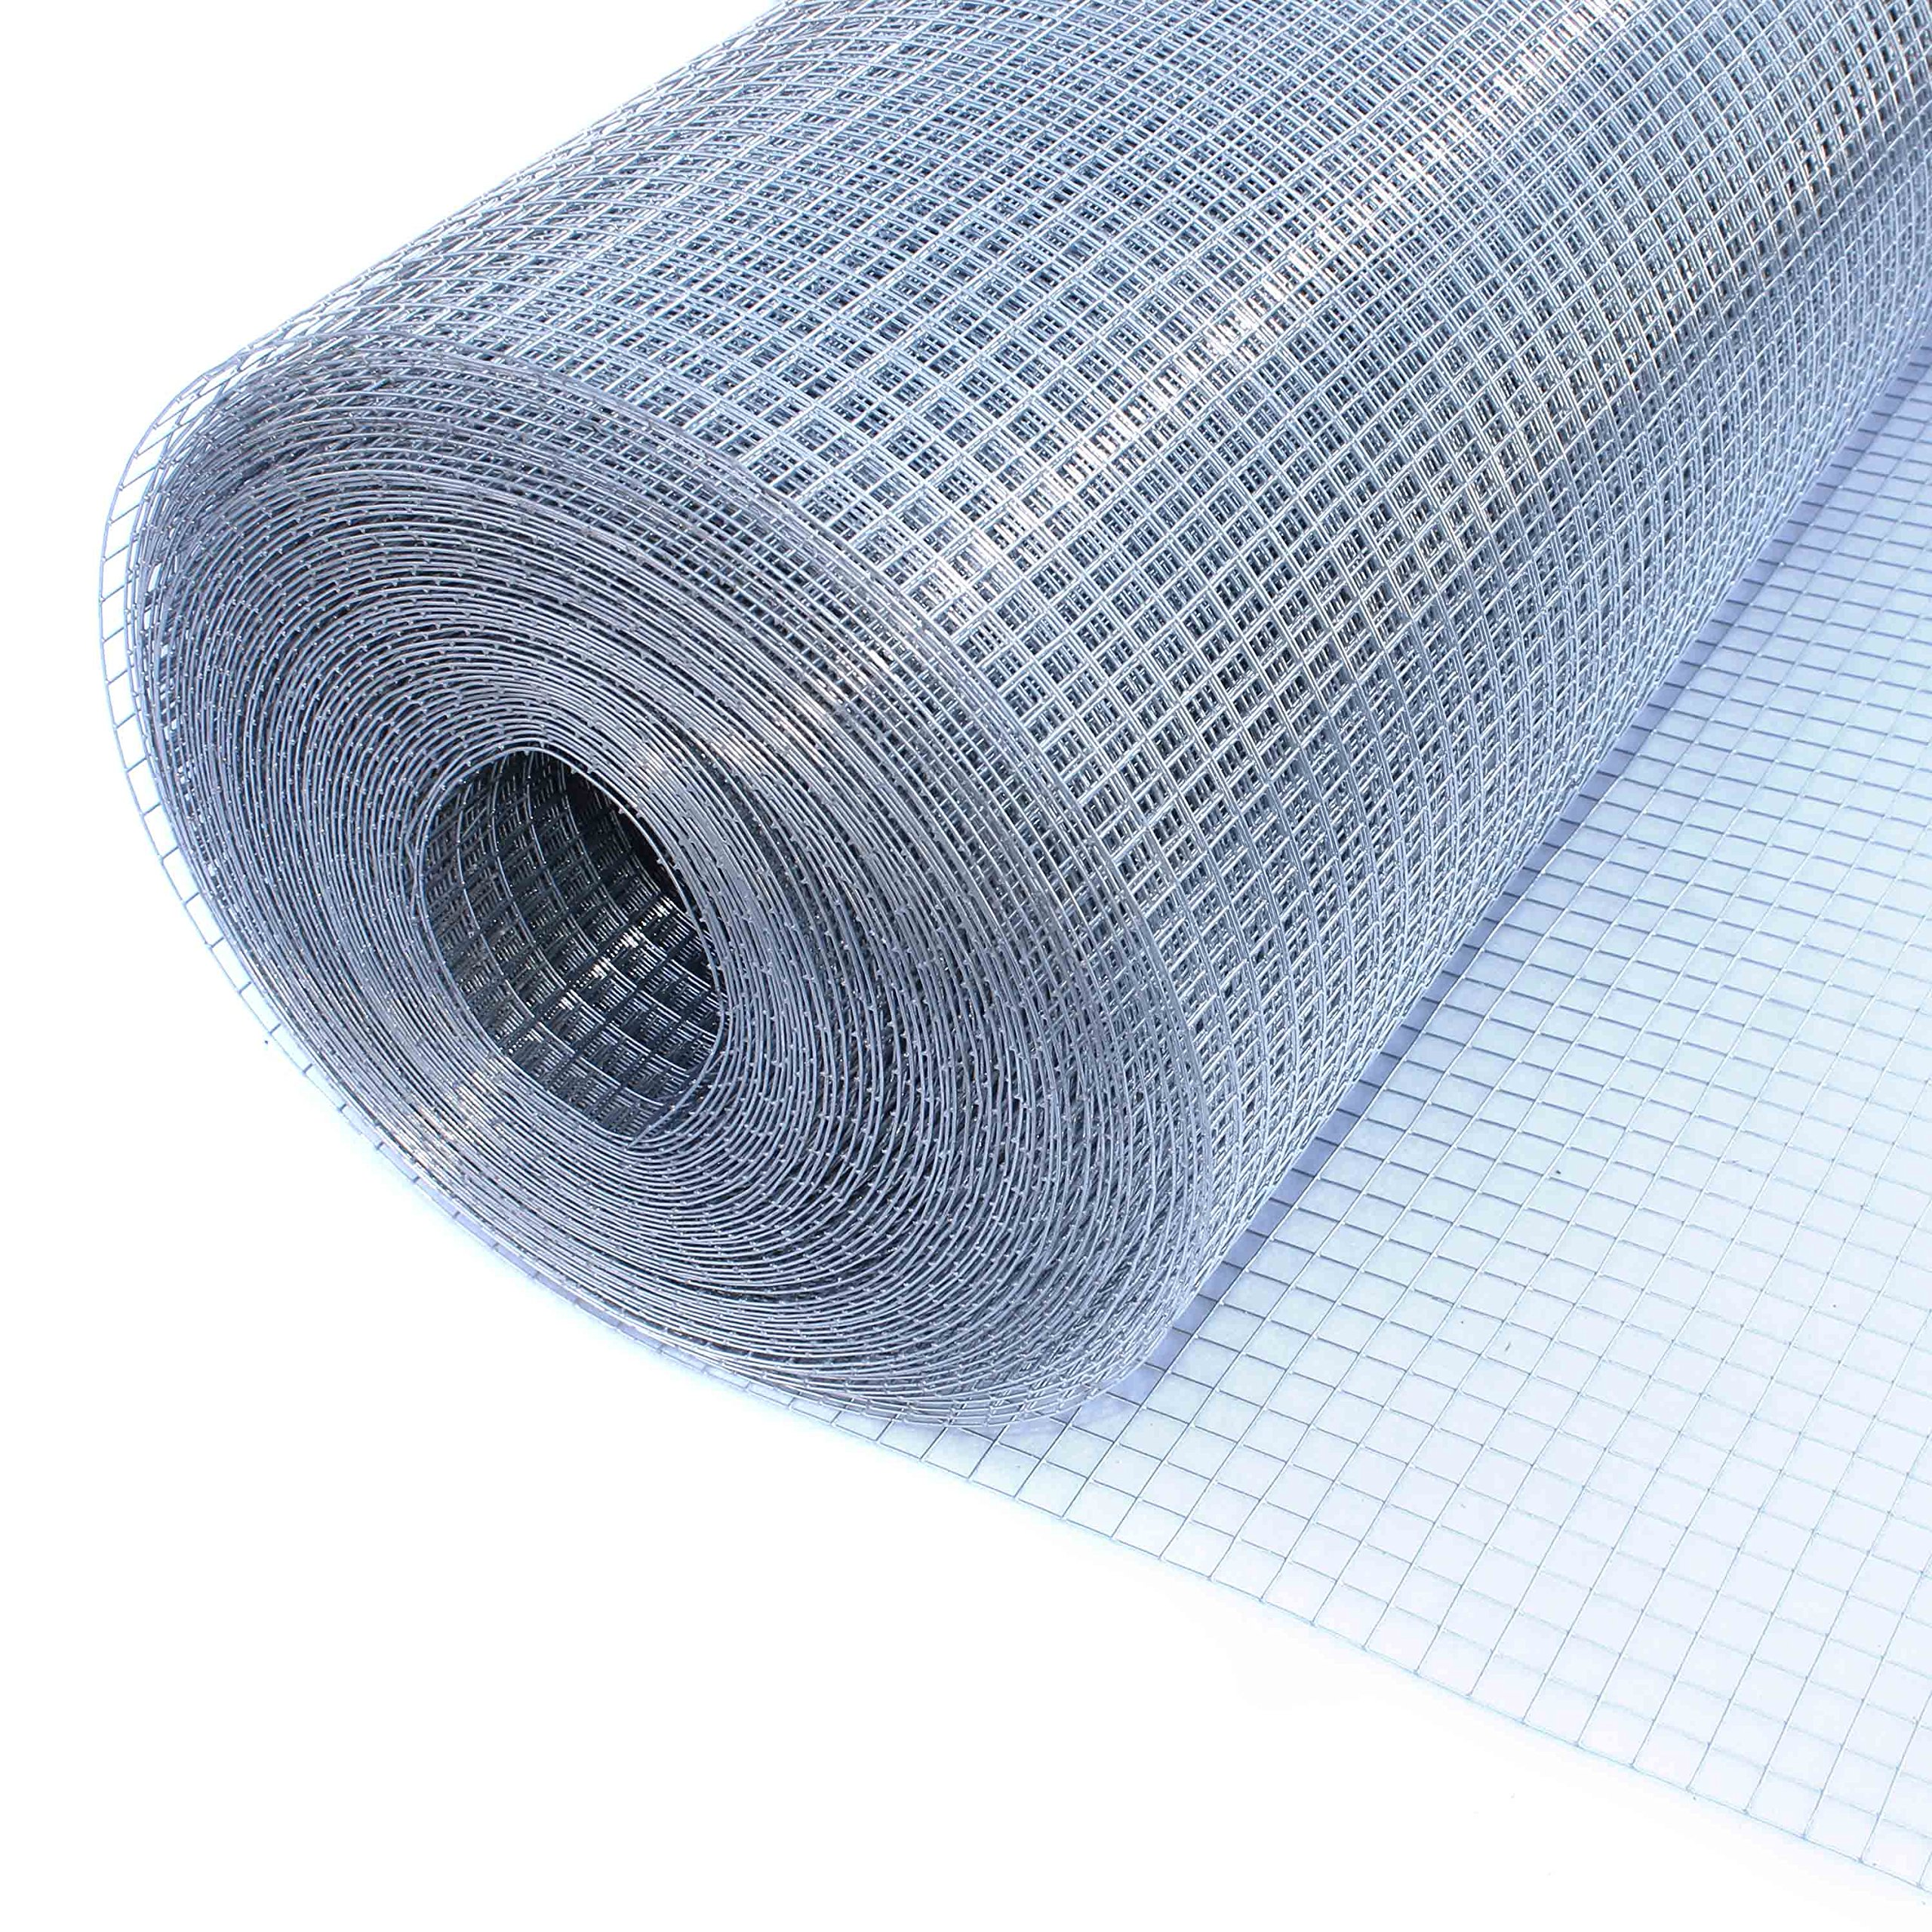 ALEKO WM48X100M1/2G19 Mesh Wire Roll Cloth, 19 Gauge Steel For Garden Fencing, Poultry Enclosures, Insulation Retainers, Storage Bins, Decorative Supports